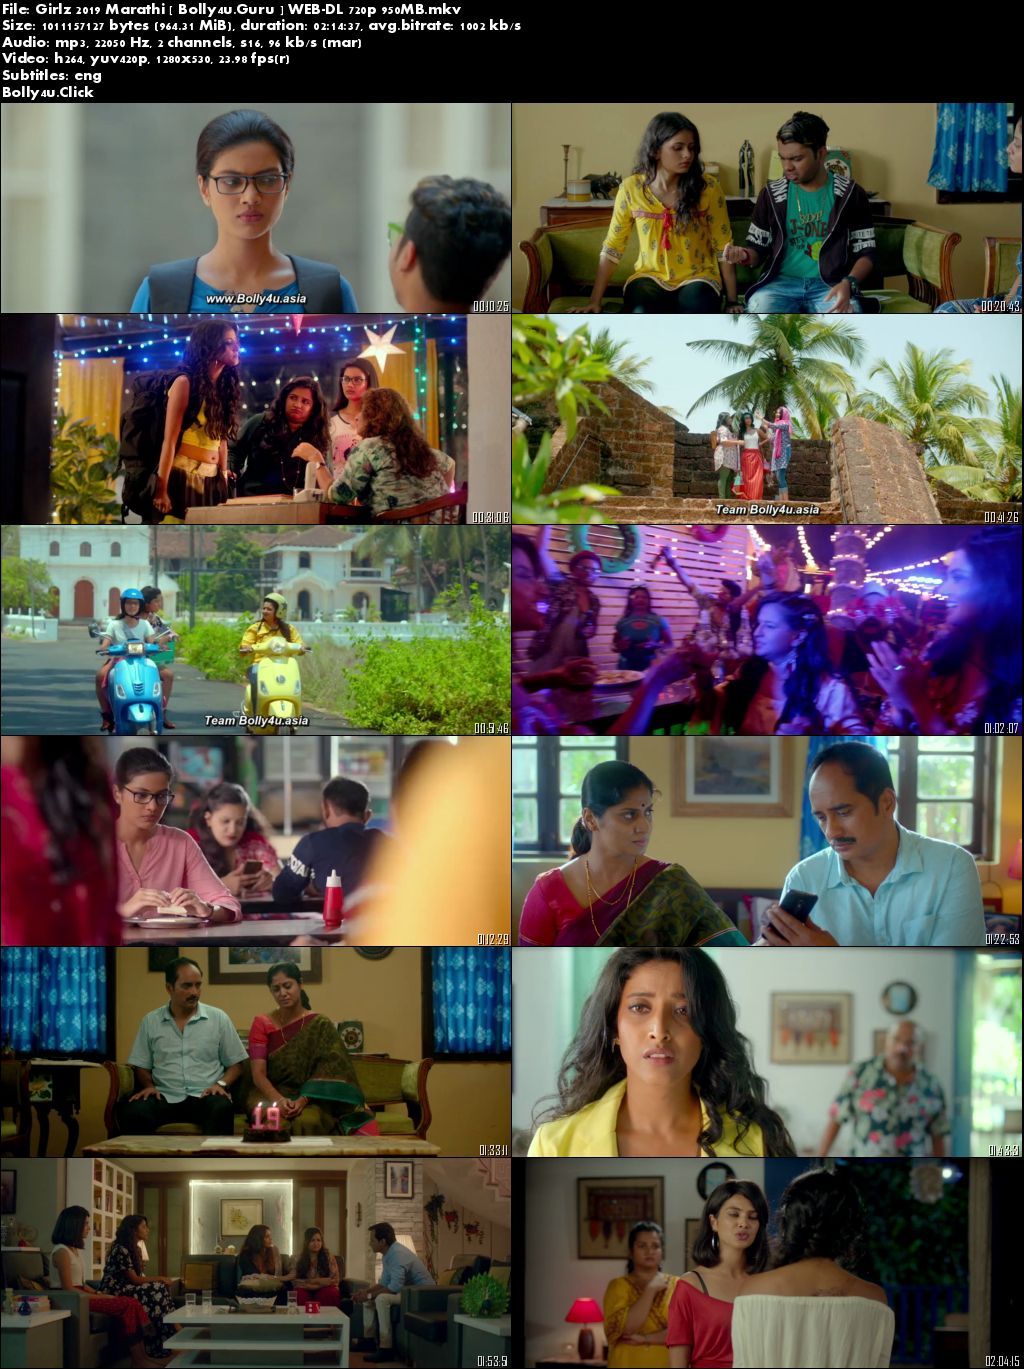 Girlz 2019 WEB-DL 950MB Marathi 720p Download